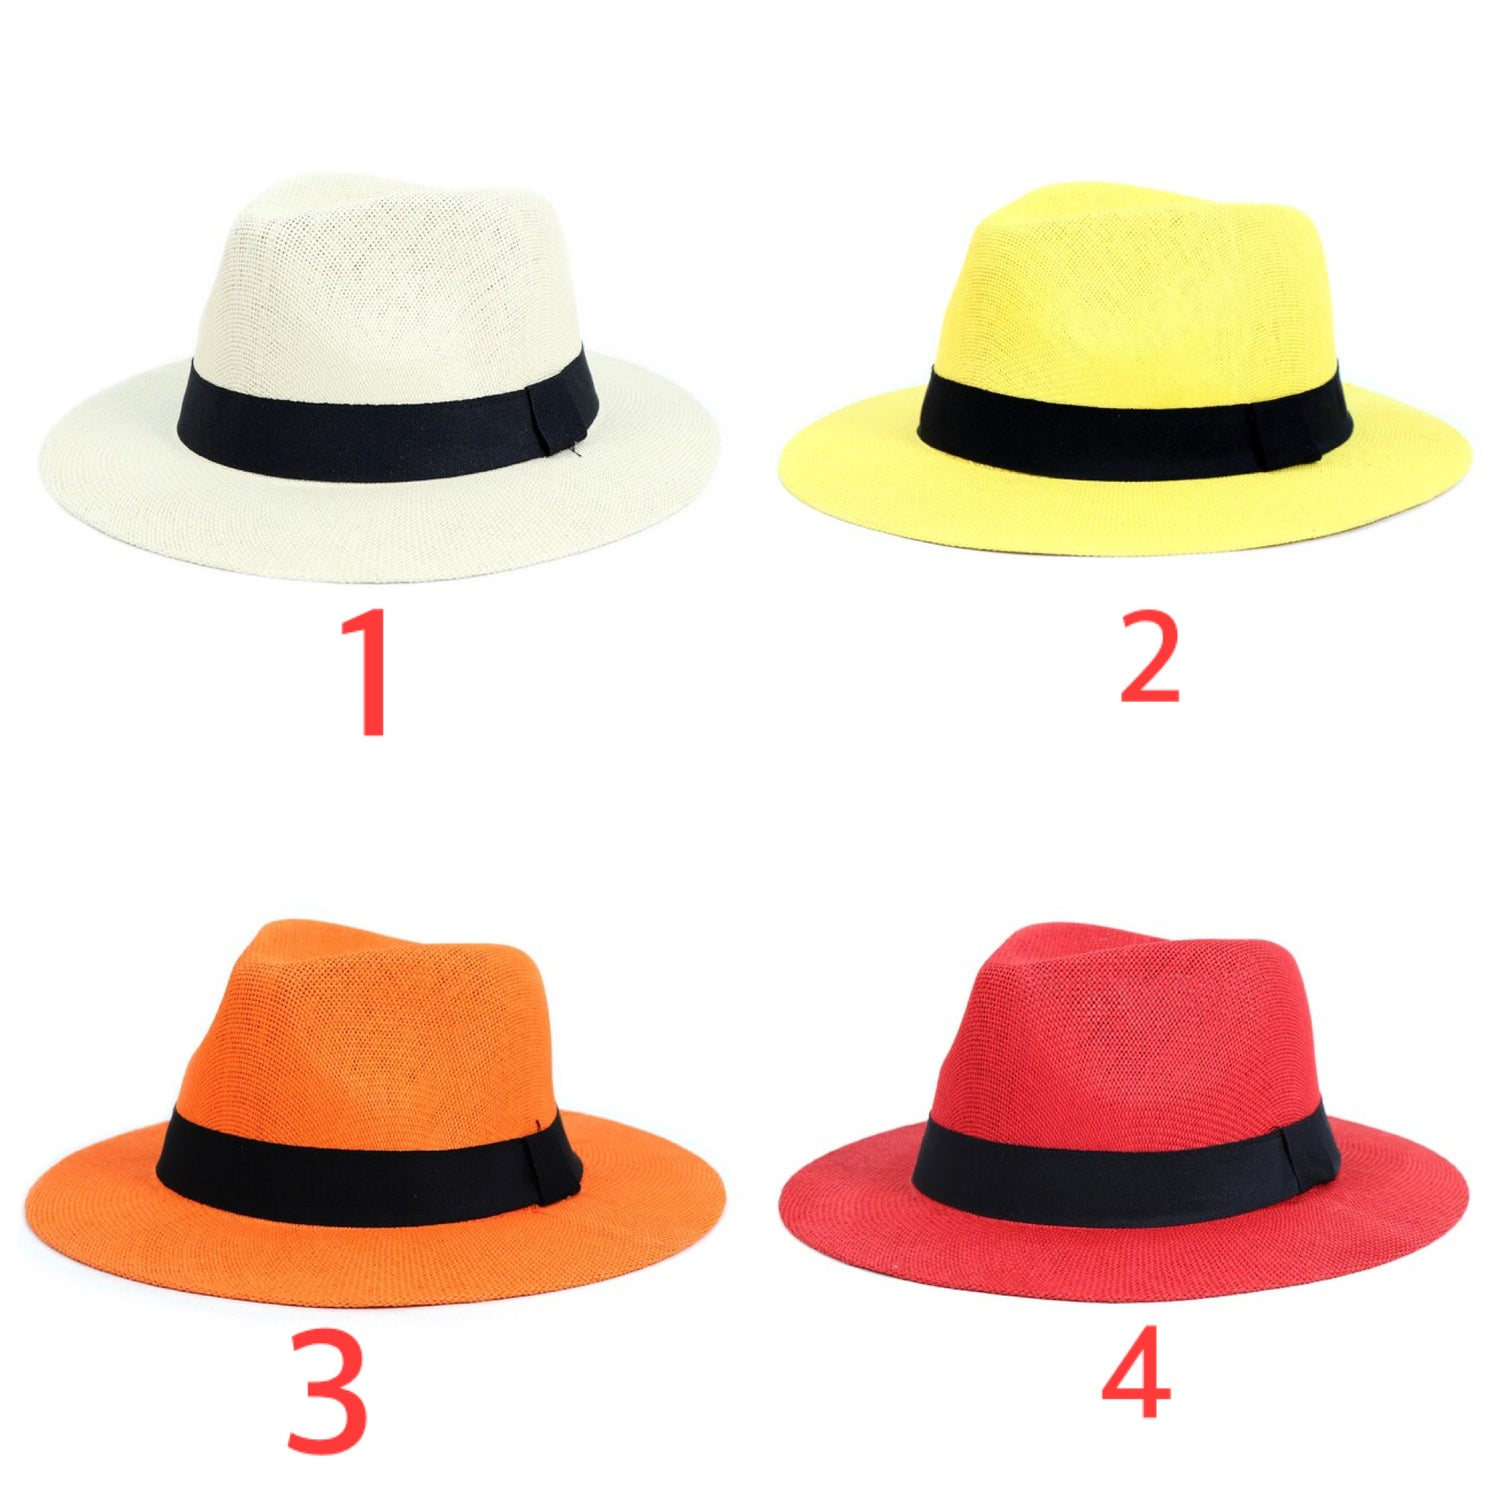 Image of Wide Brim Fedora Hats